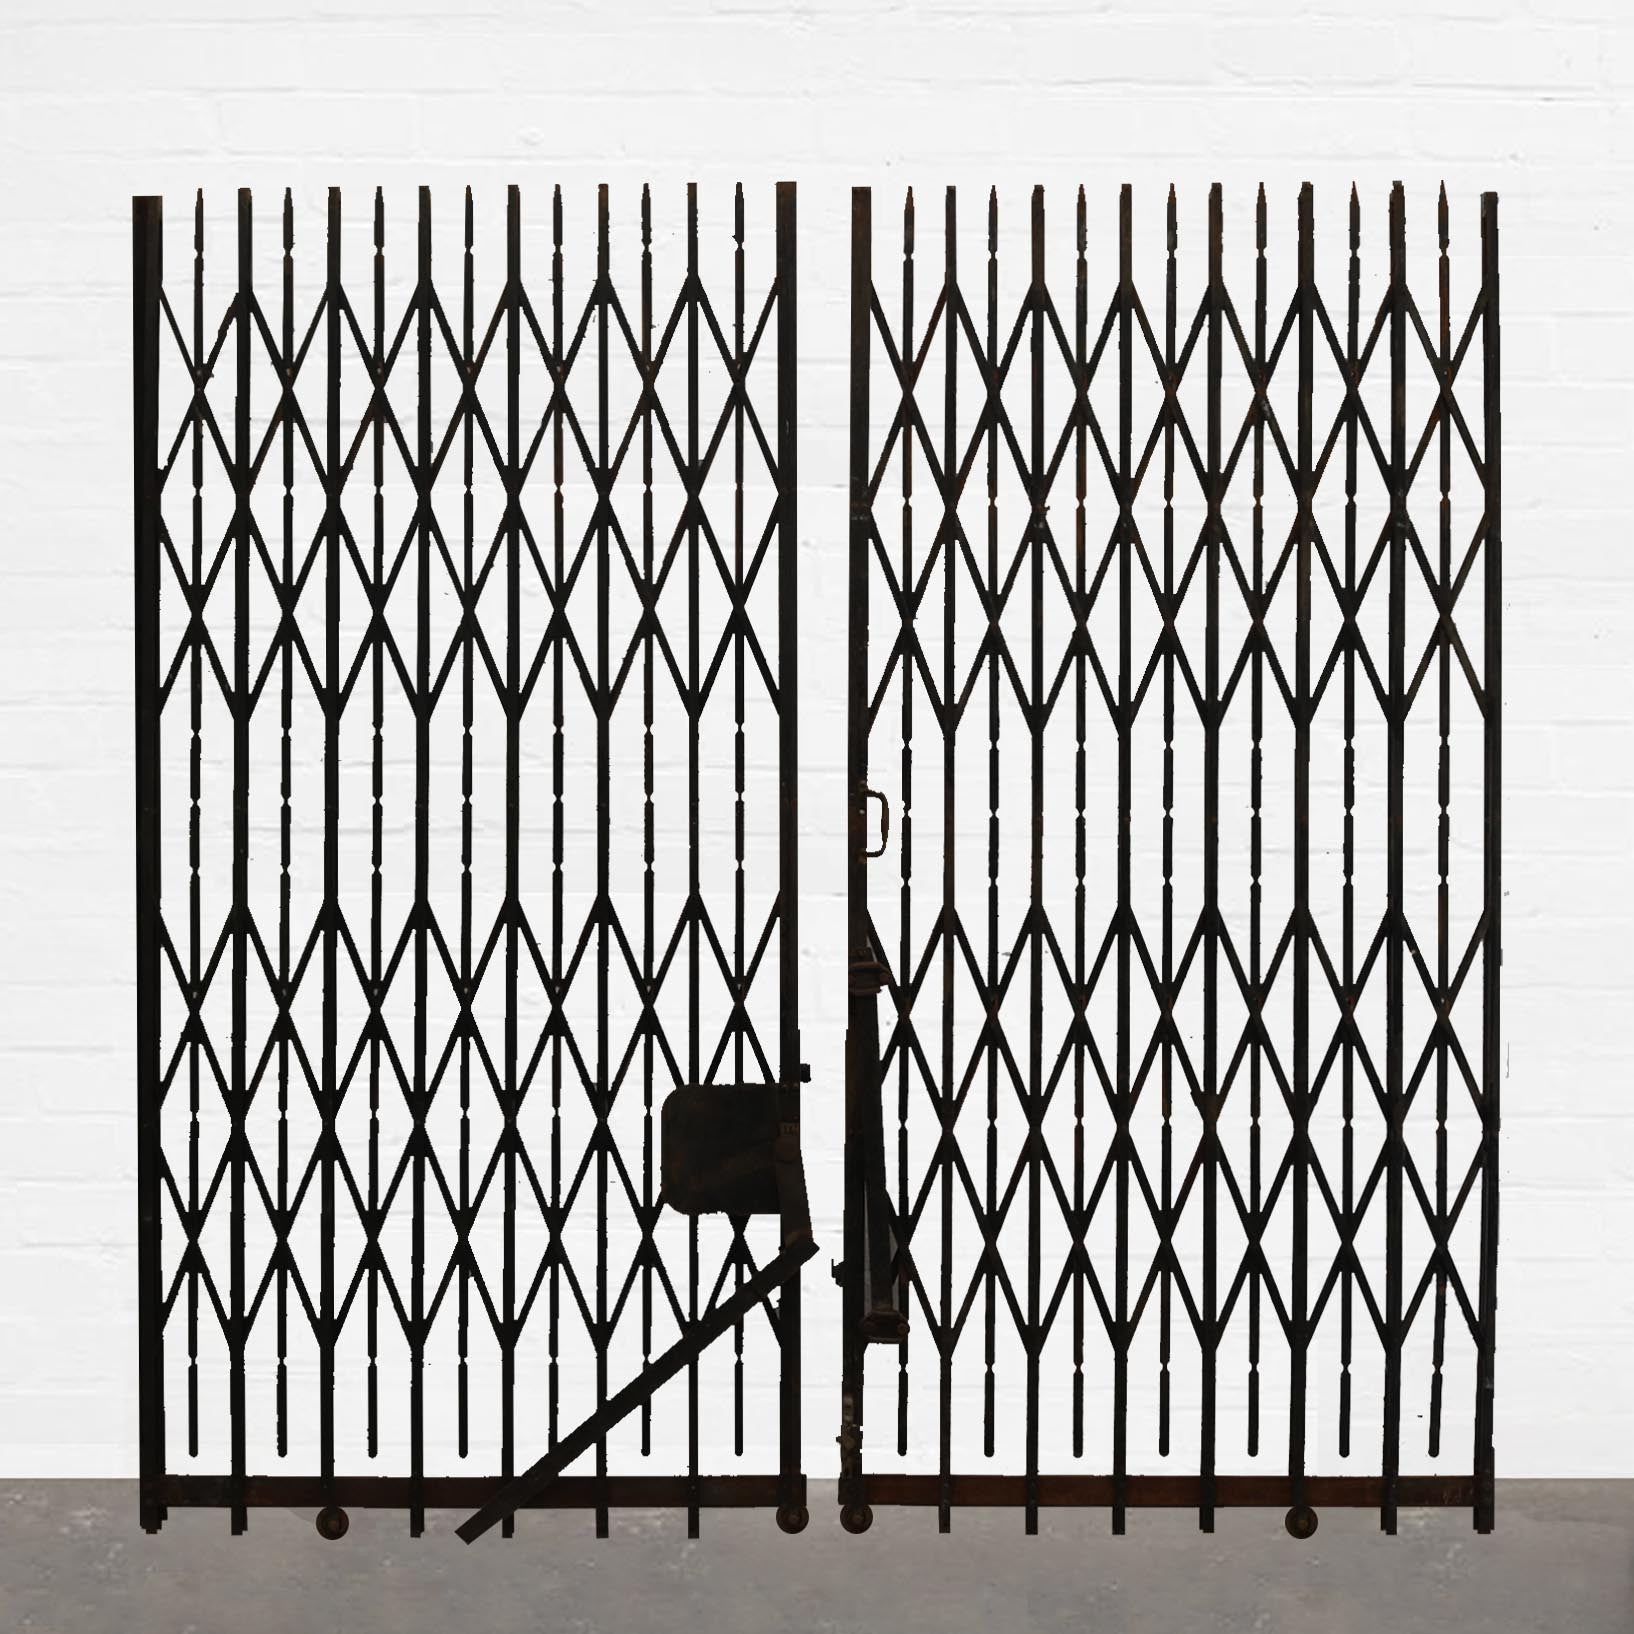 Double Concertina Gates / Lift Doors - The Architectural Forum